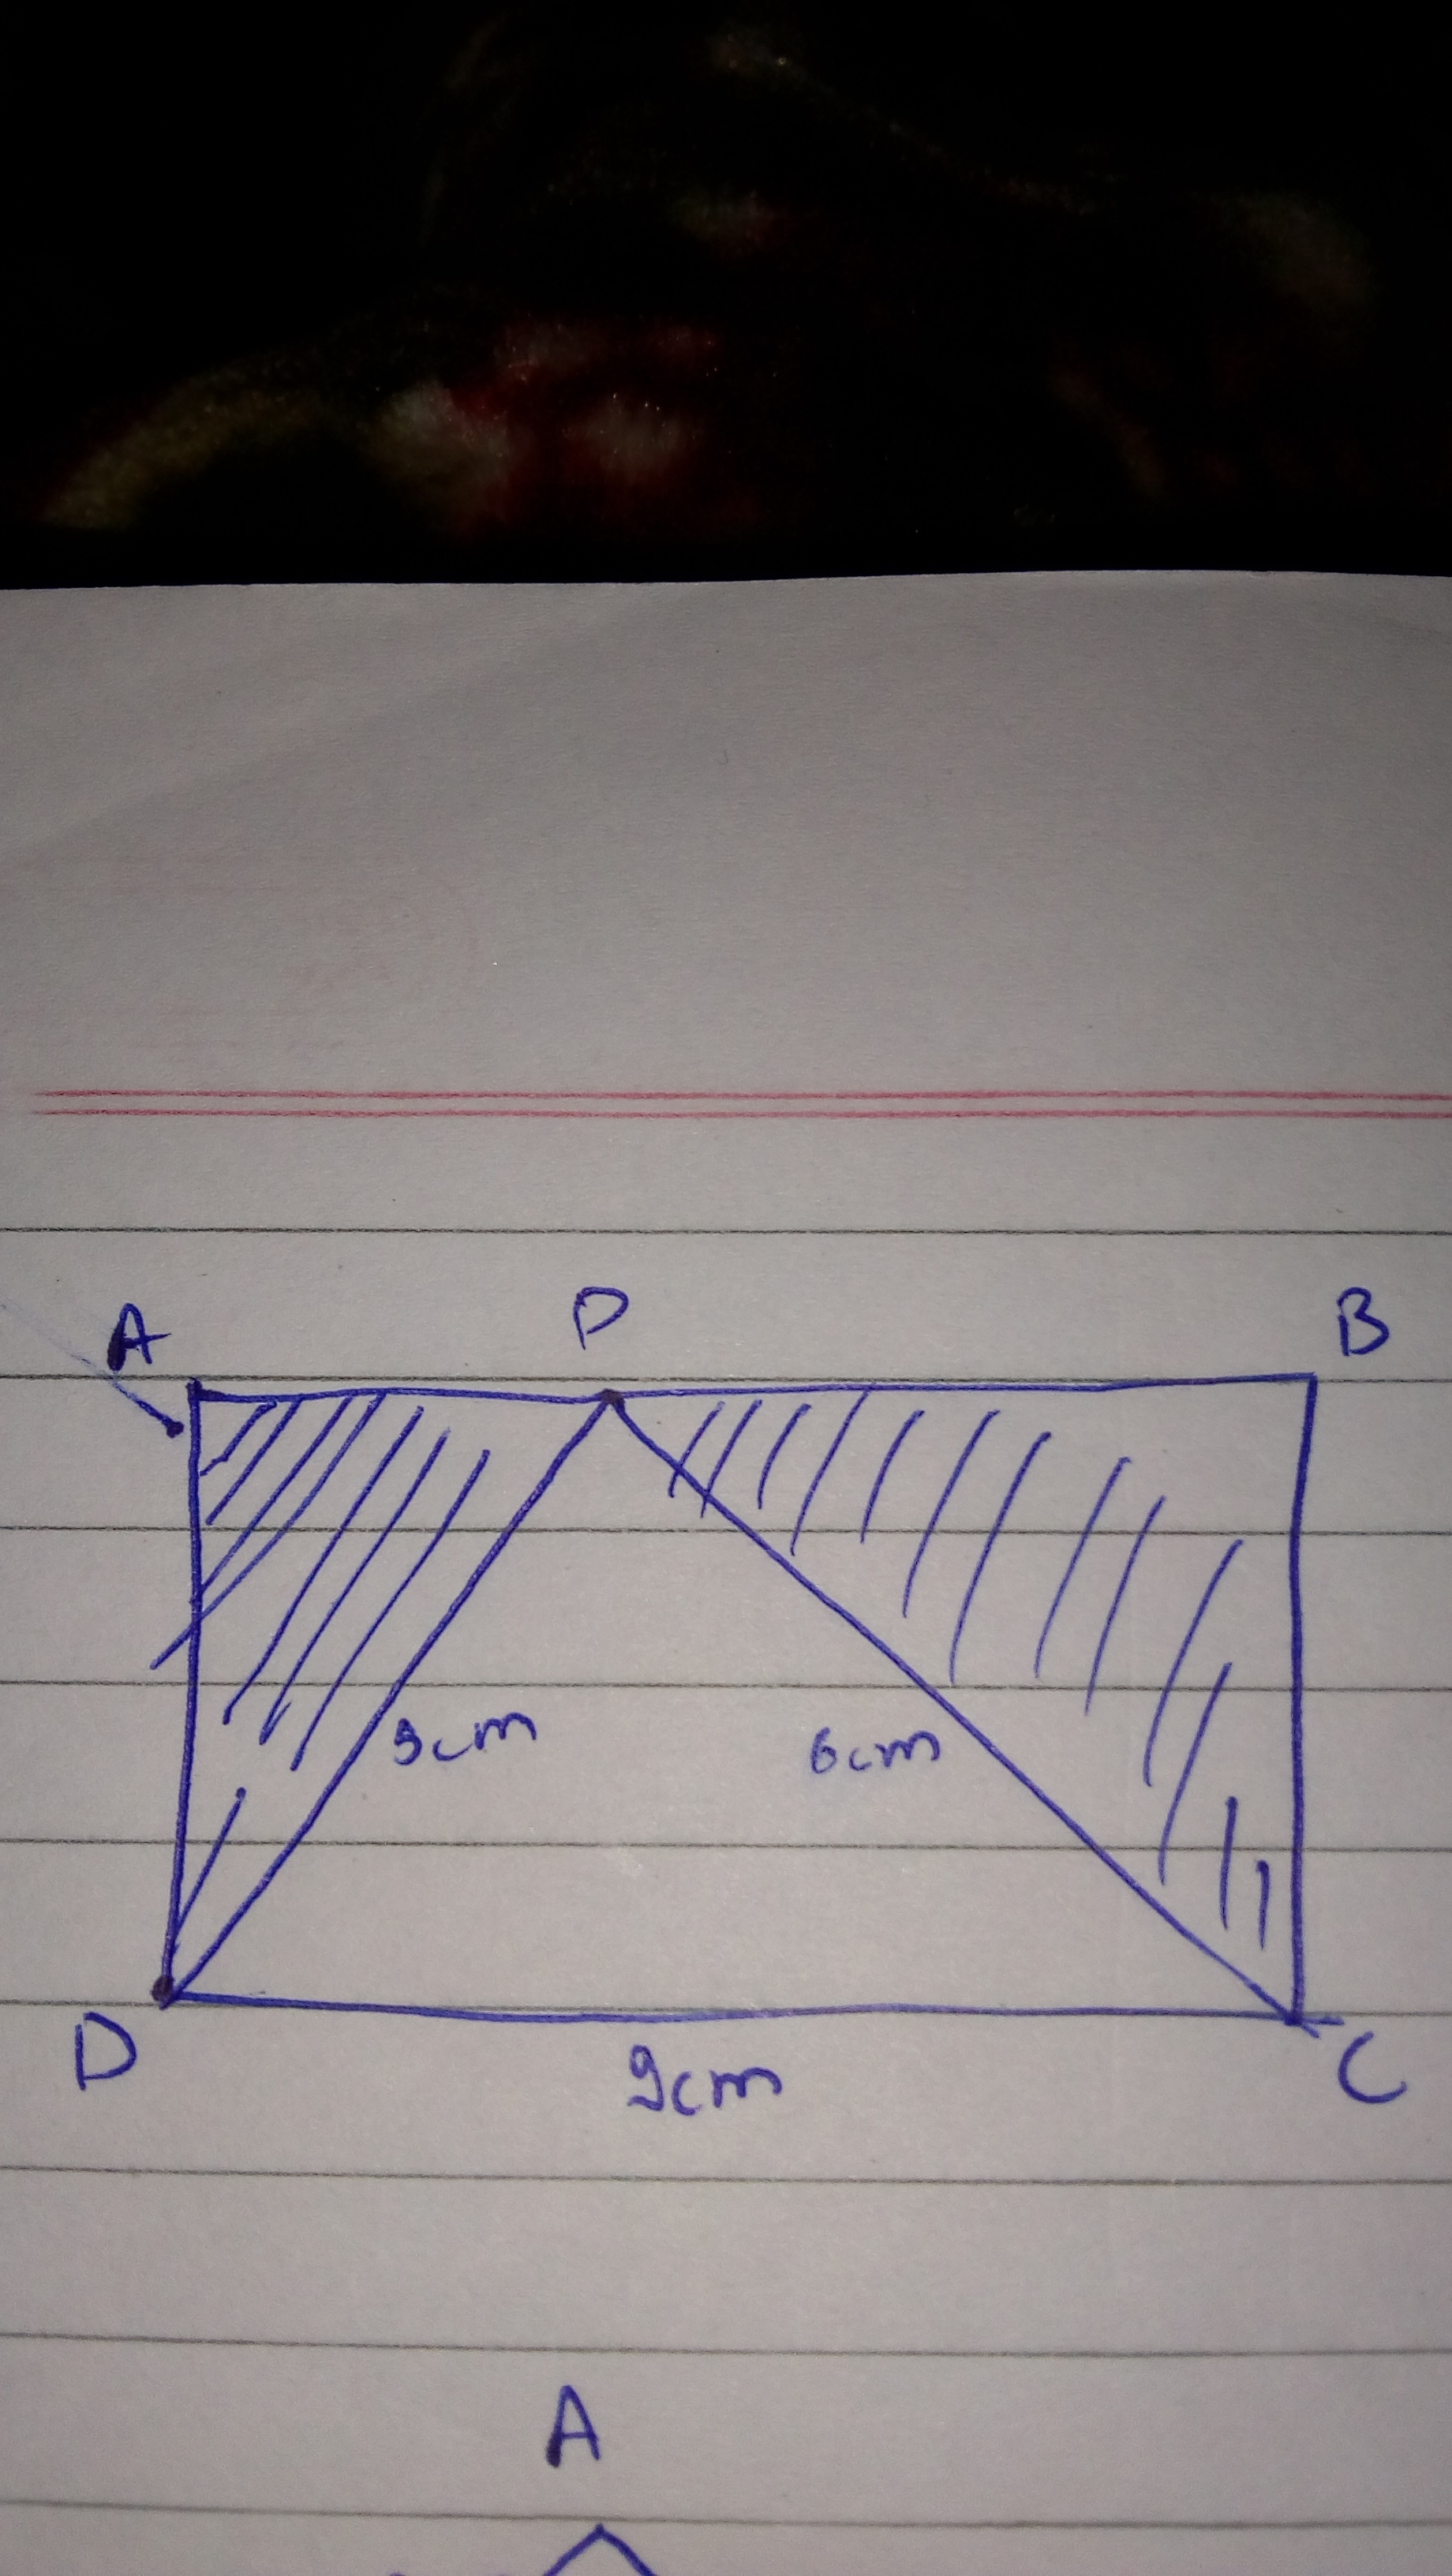 Find The Area Of The Shaded Region If Abcd Is A Rectangle